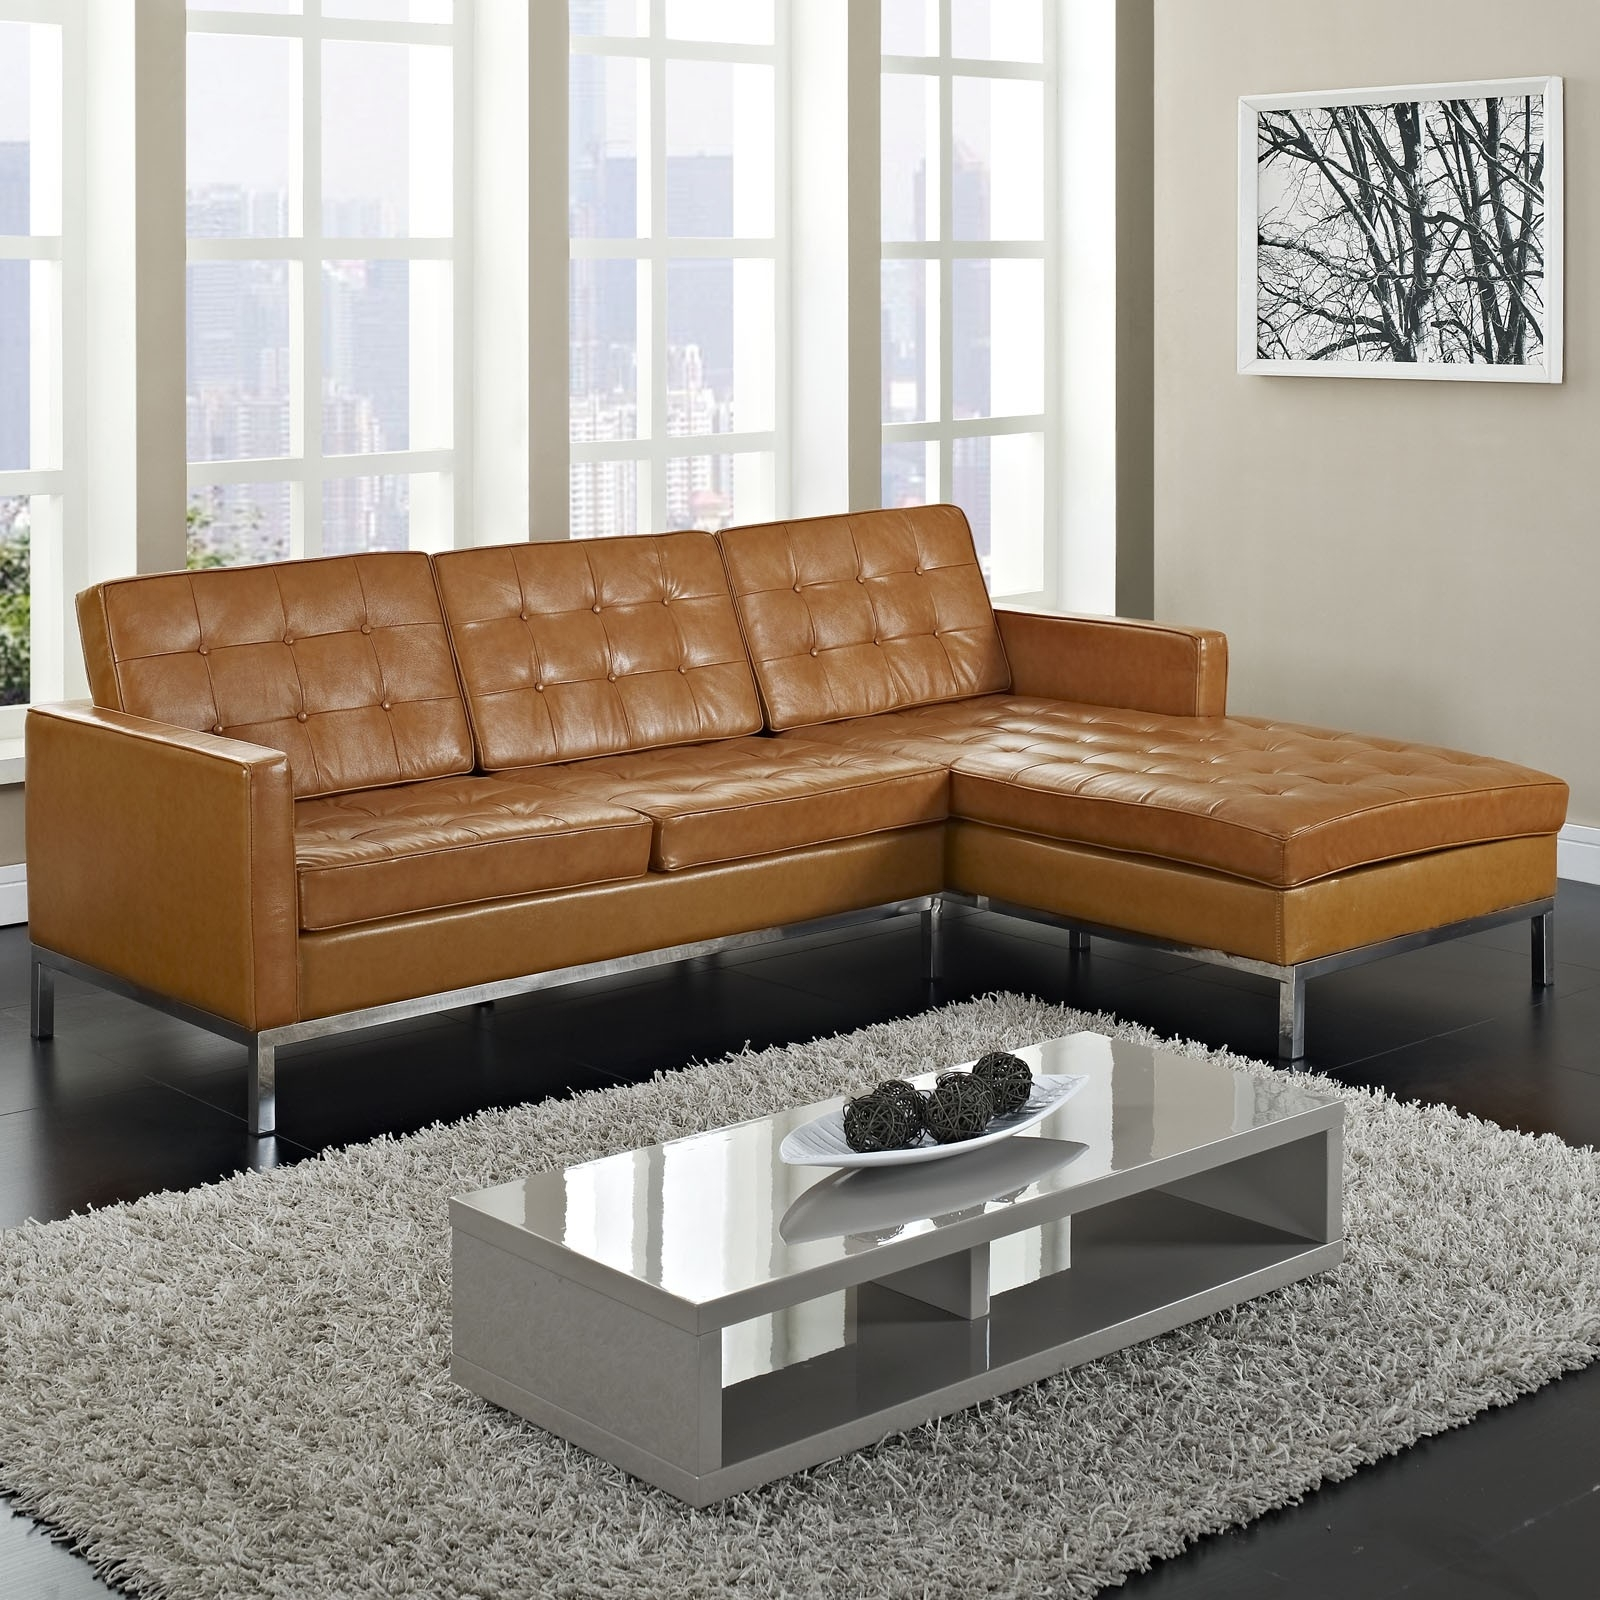 Furniture, Maximizing Small Living Room Spaces With 3 Piece Brown Inside Tufted Sectional Sofas (Image 2 of 10)